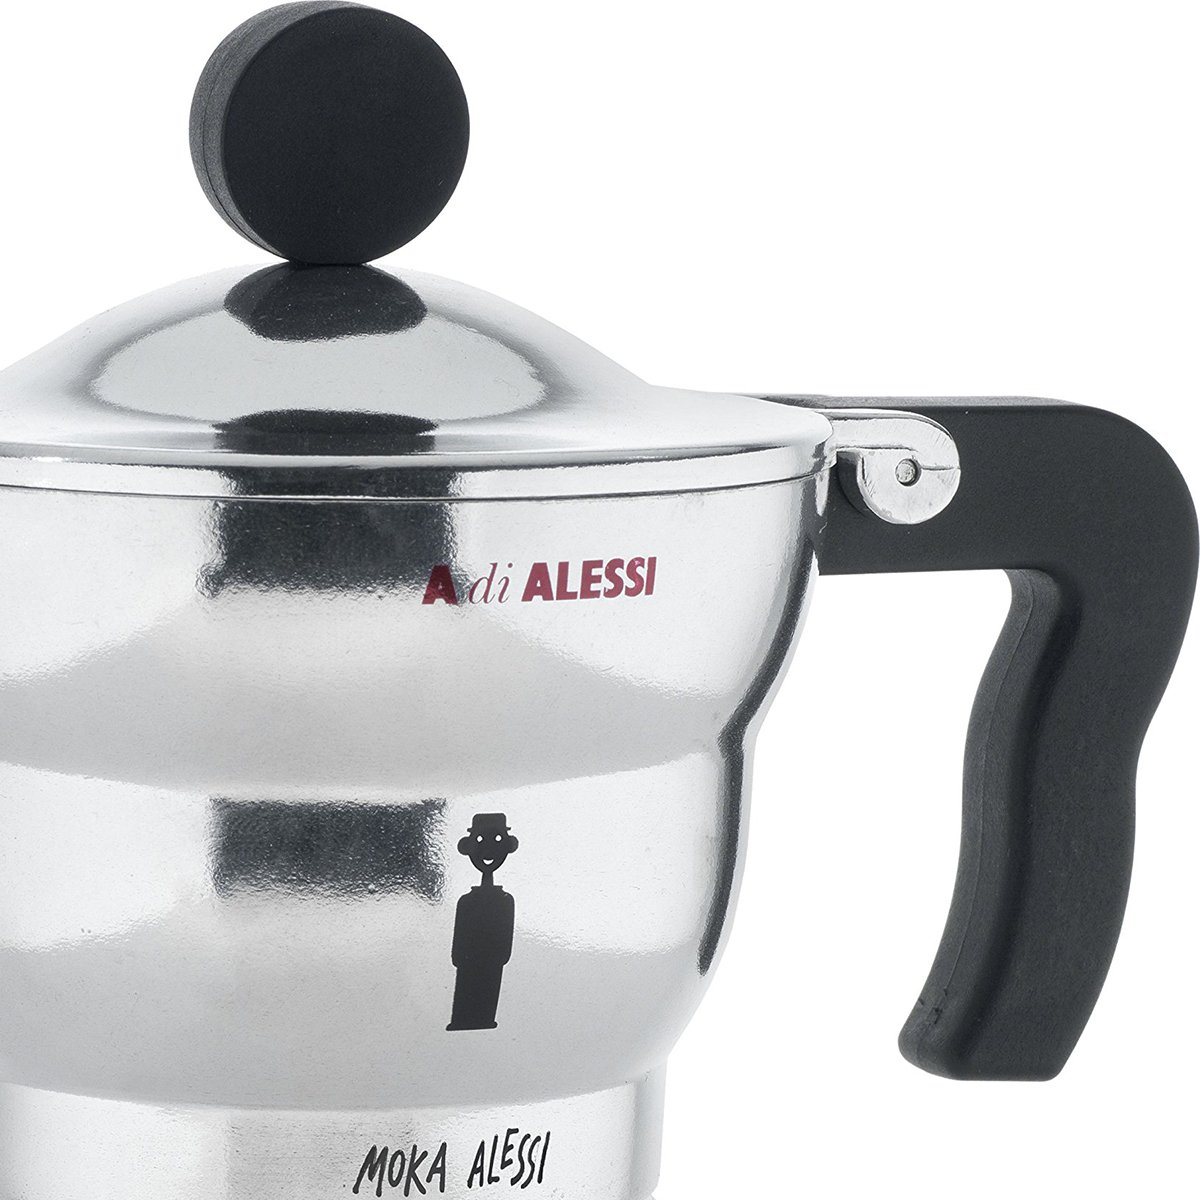 Alessi AAM33/3''Moka'' Stove Top Espresso 3 Cup Coffee Maker in Aluminium Casting Handle And Knob in Thermoplastic Resin, Black